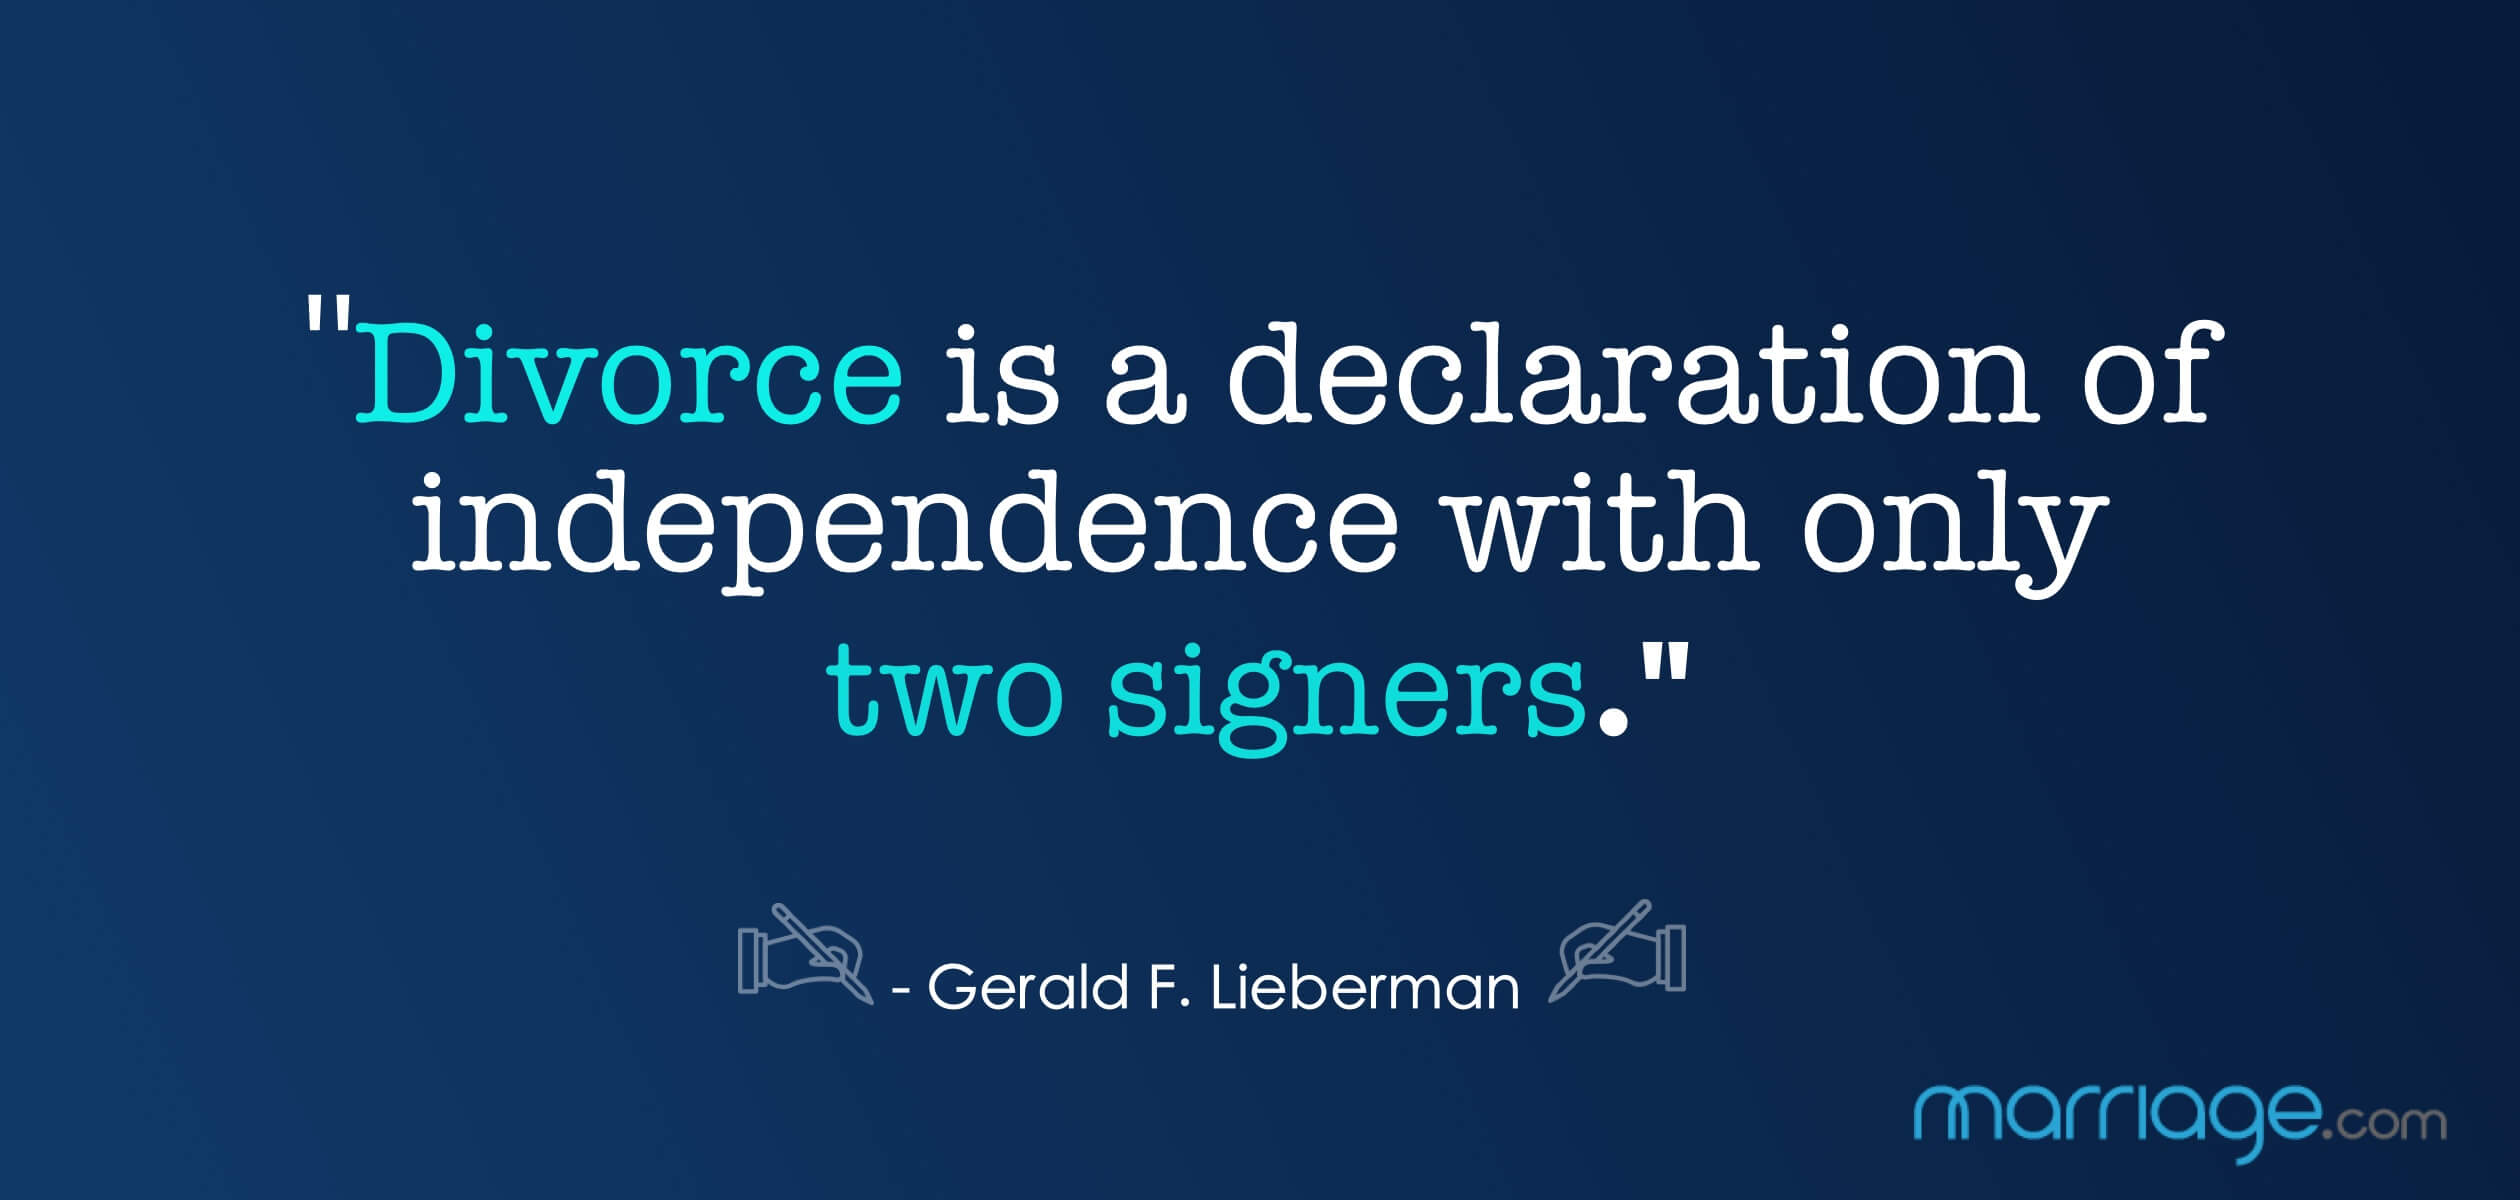 """Divorce is a declaration of independence with only two signers.\"" - Gerald F. Lieberman"